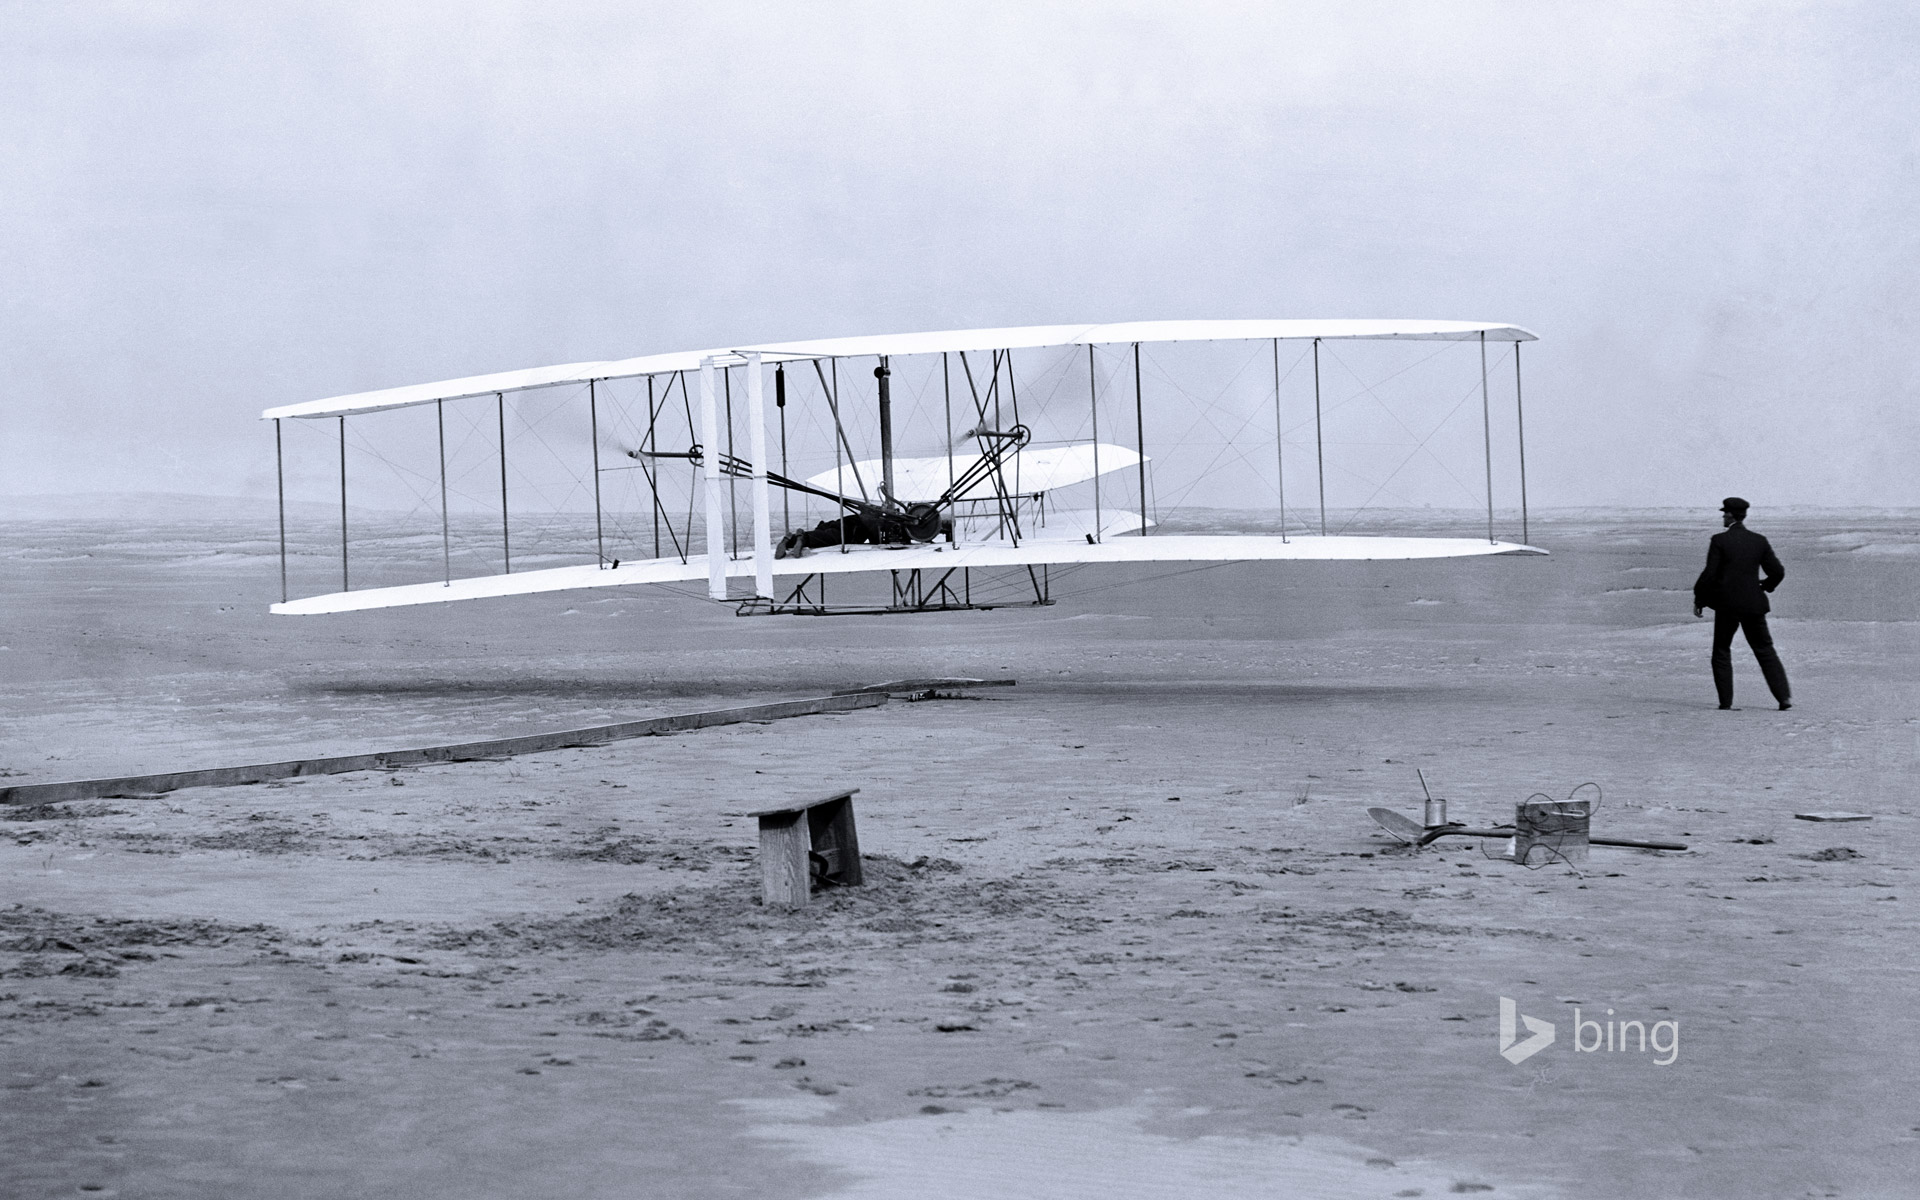 Wright brothers' first airplane flight in 1903